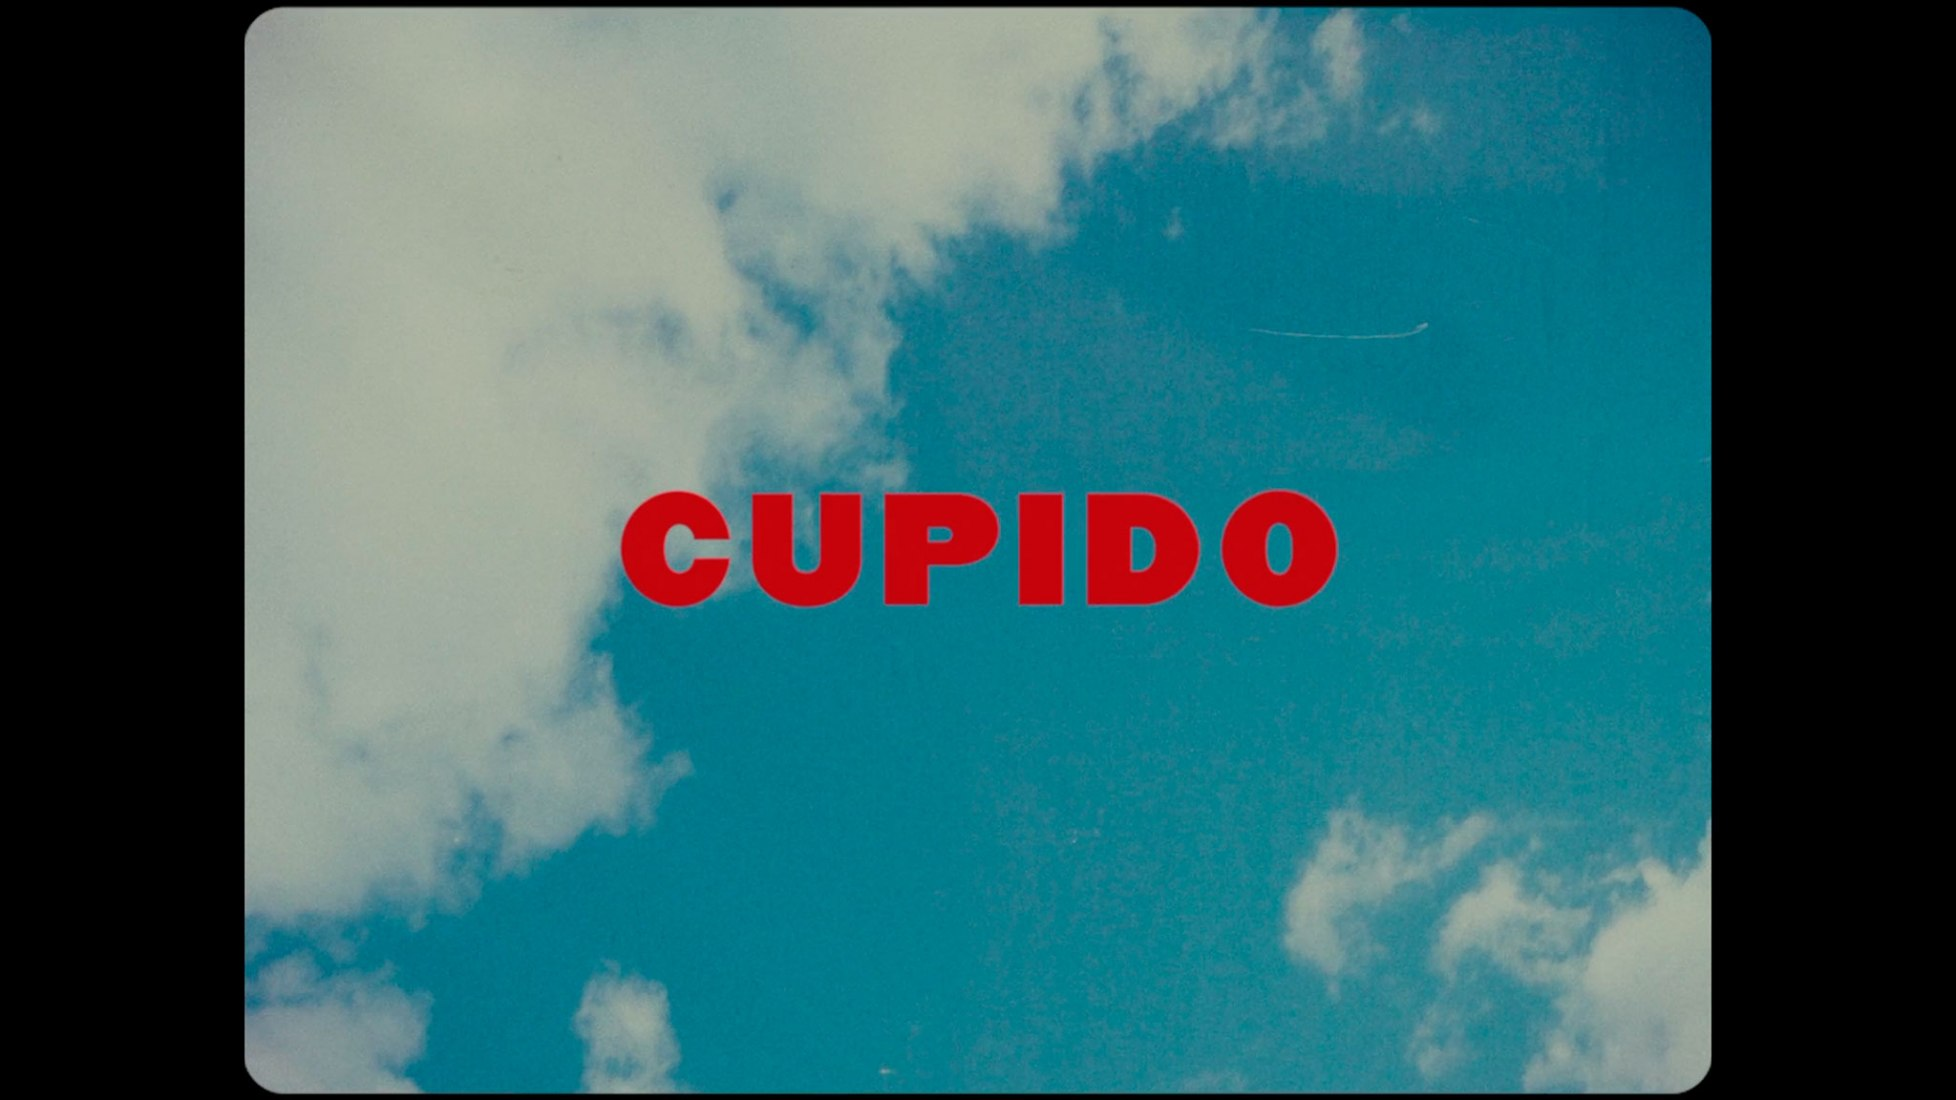 No Sabes Mentir by CUPIDO